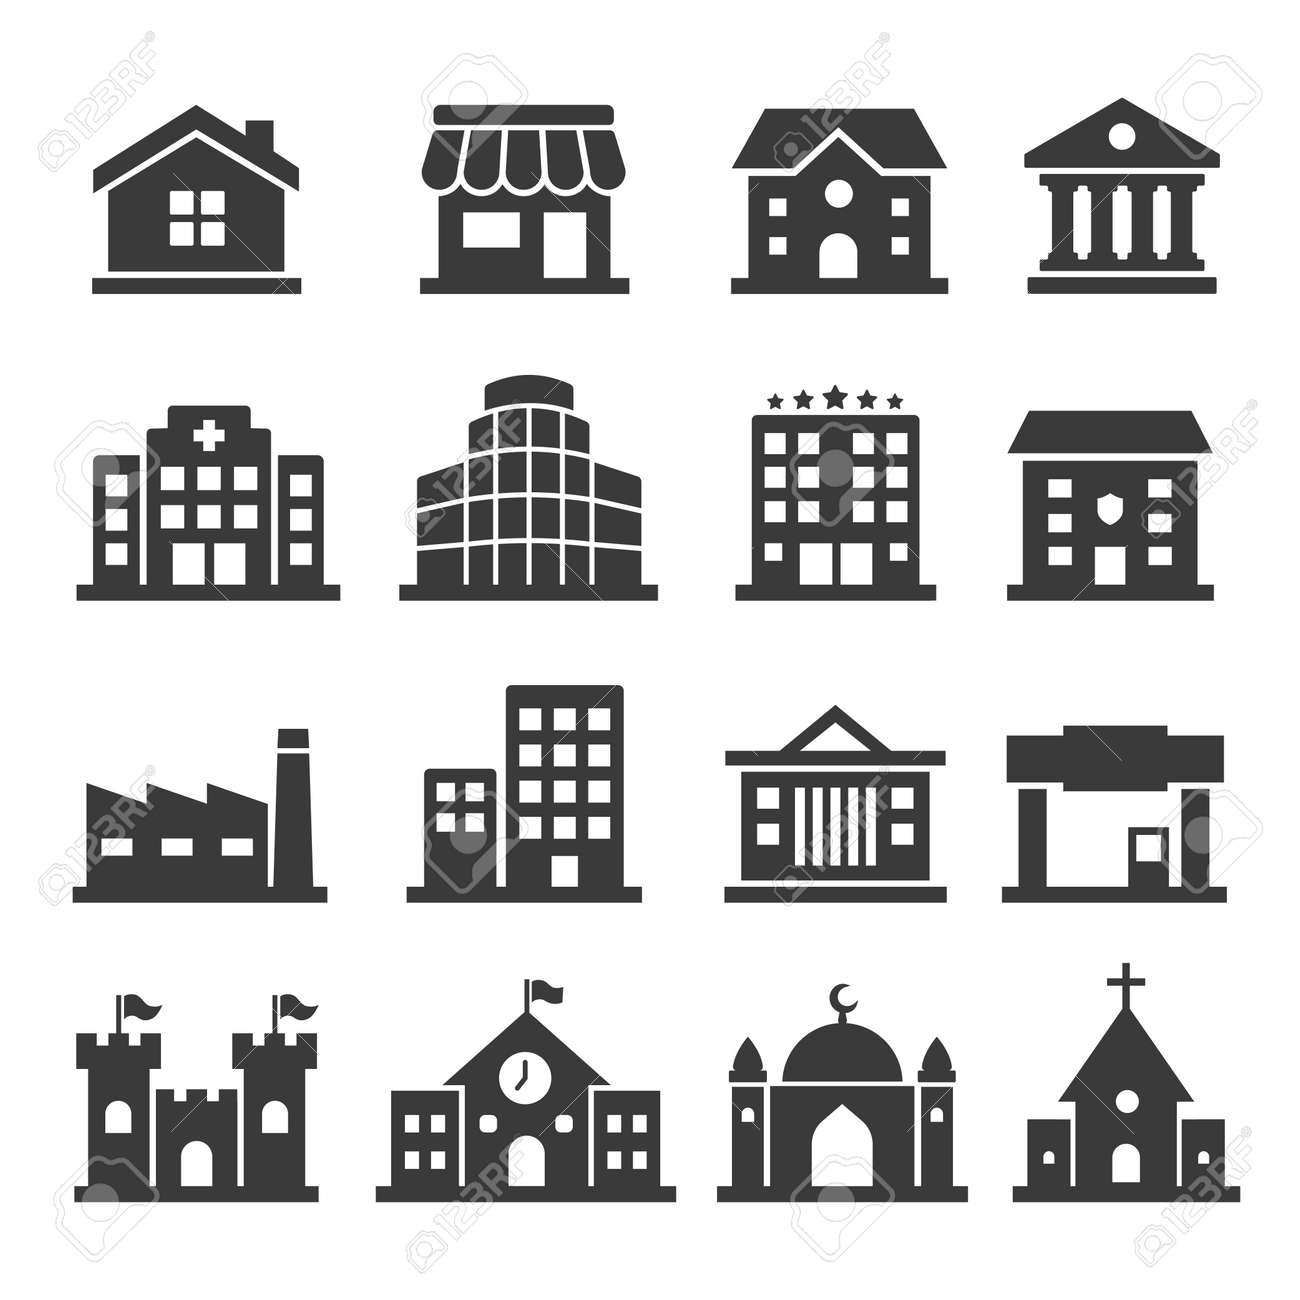 Public building vector icon set on white background - 148986916